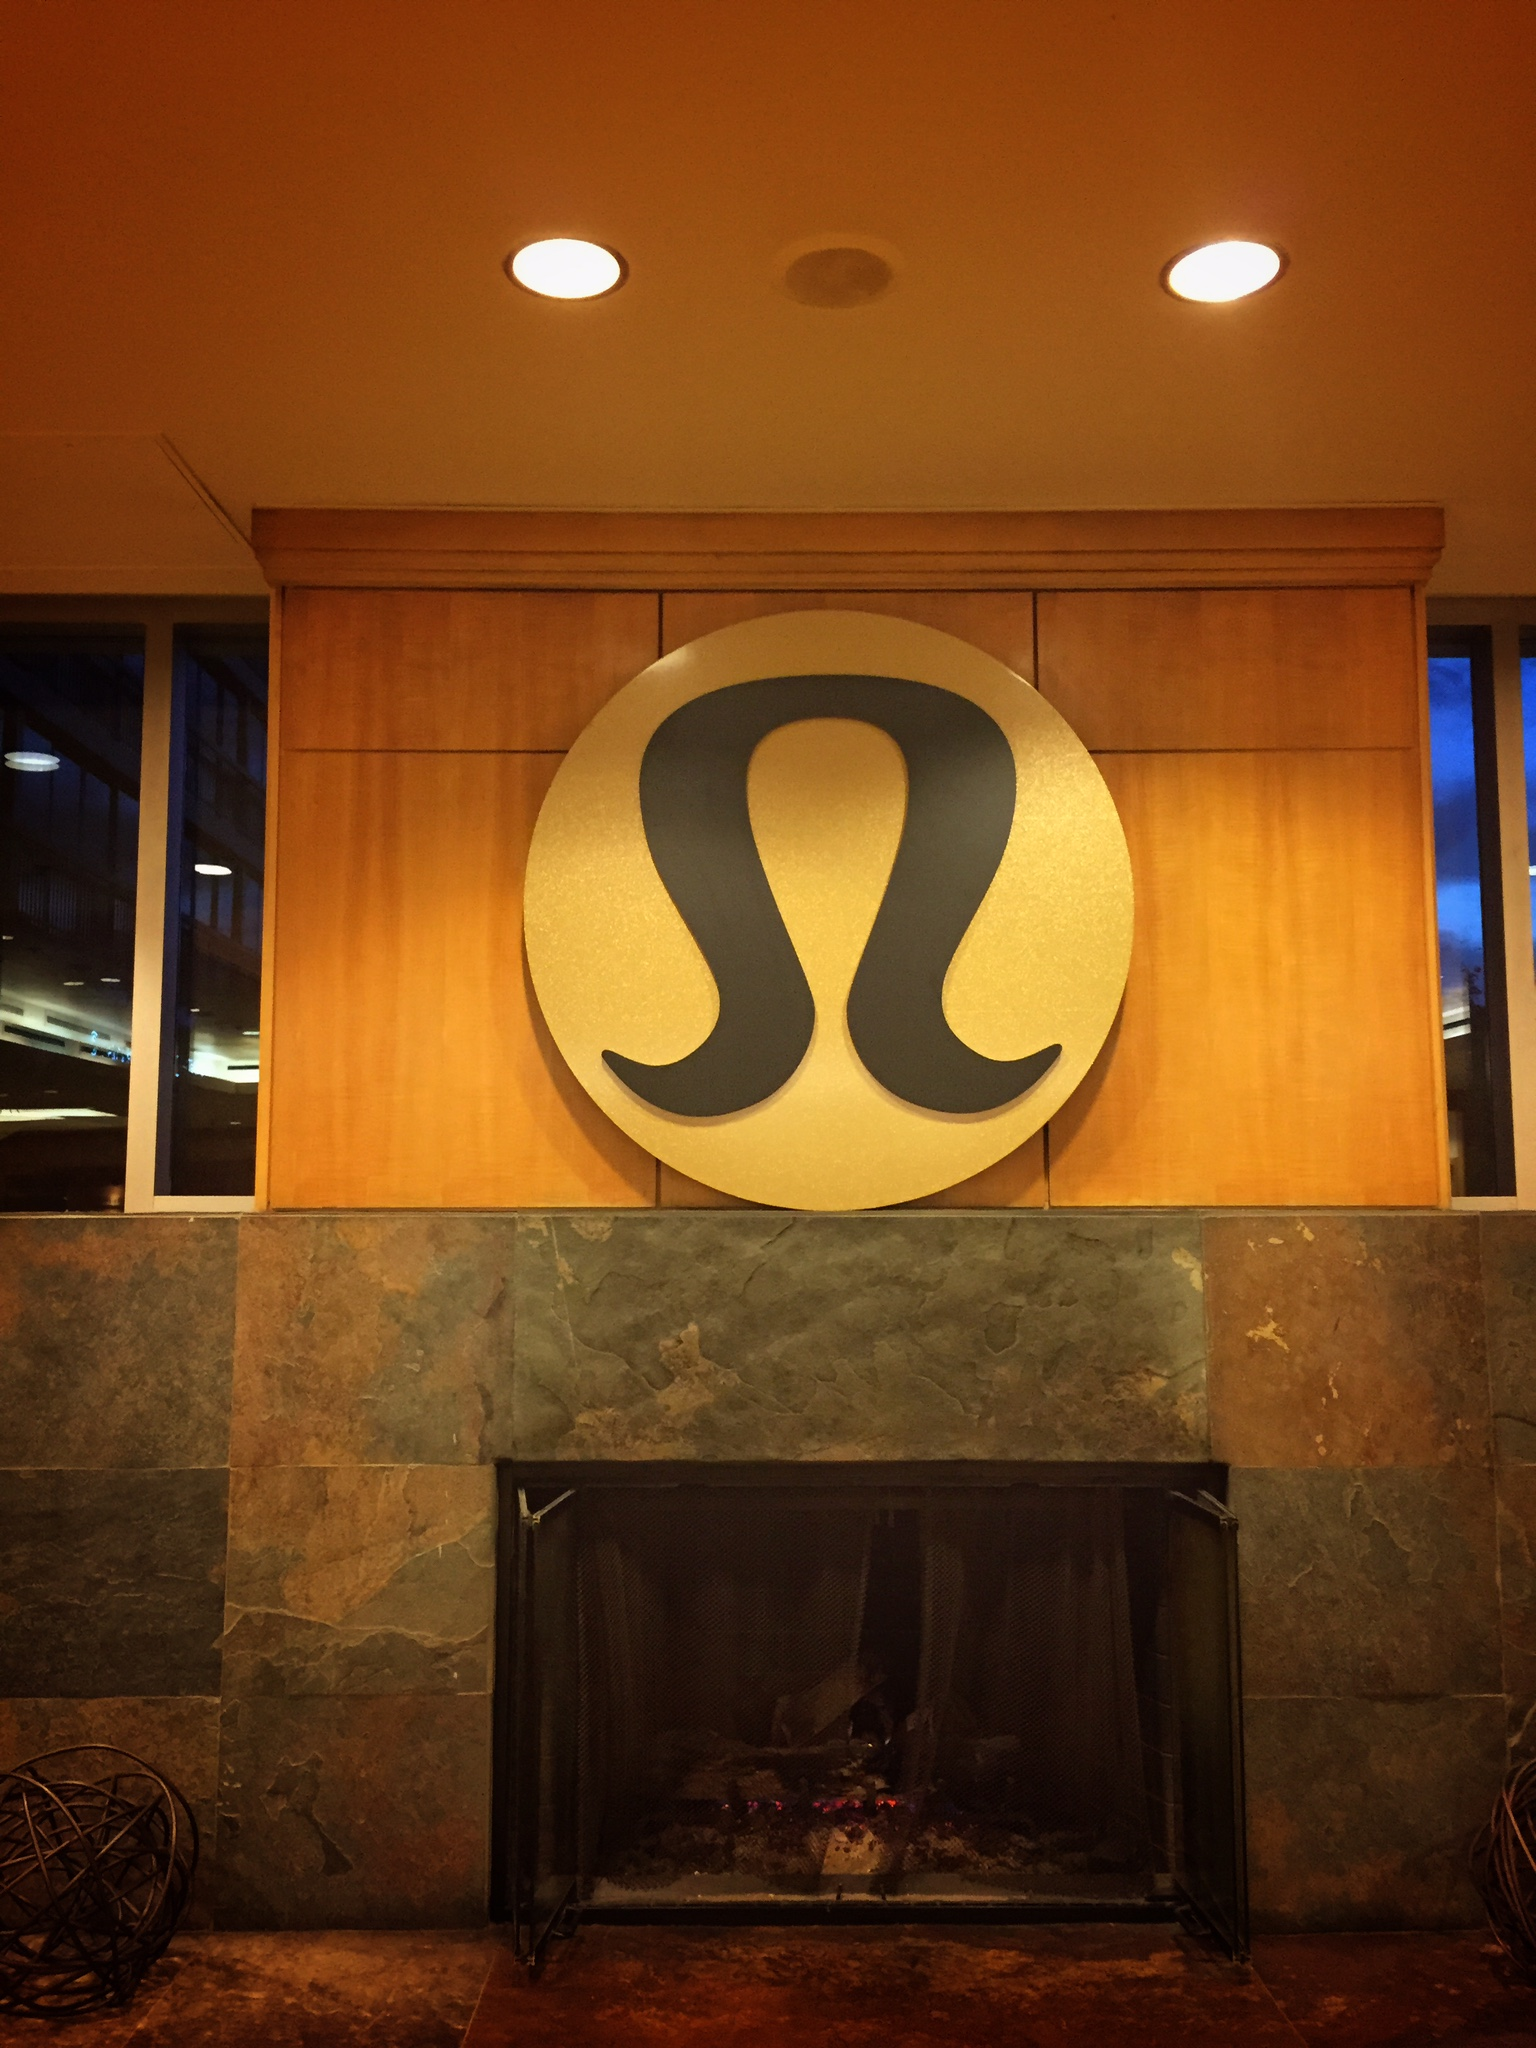 This large Lululemon logo greeted attendees at the entrance of the Westin Bayshore.